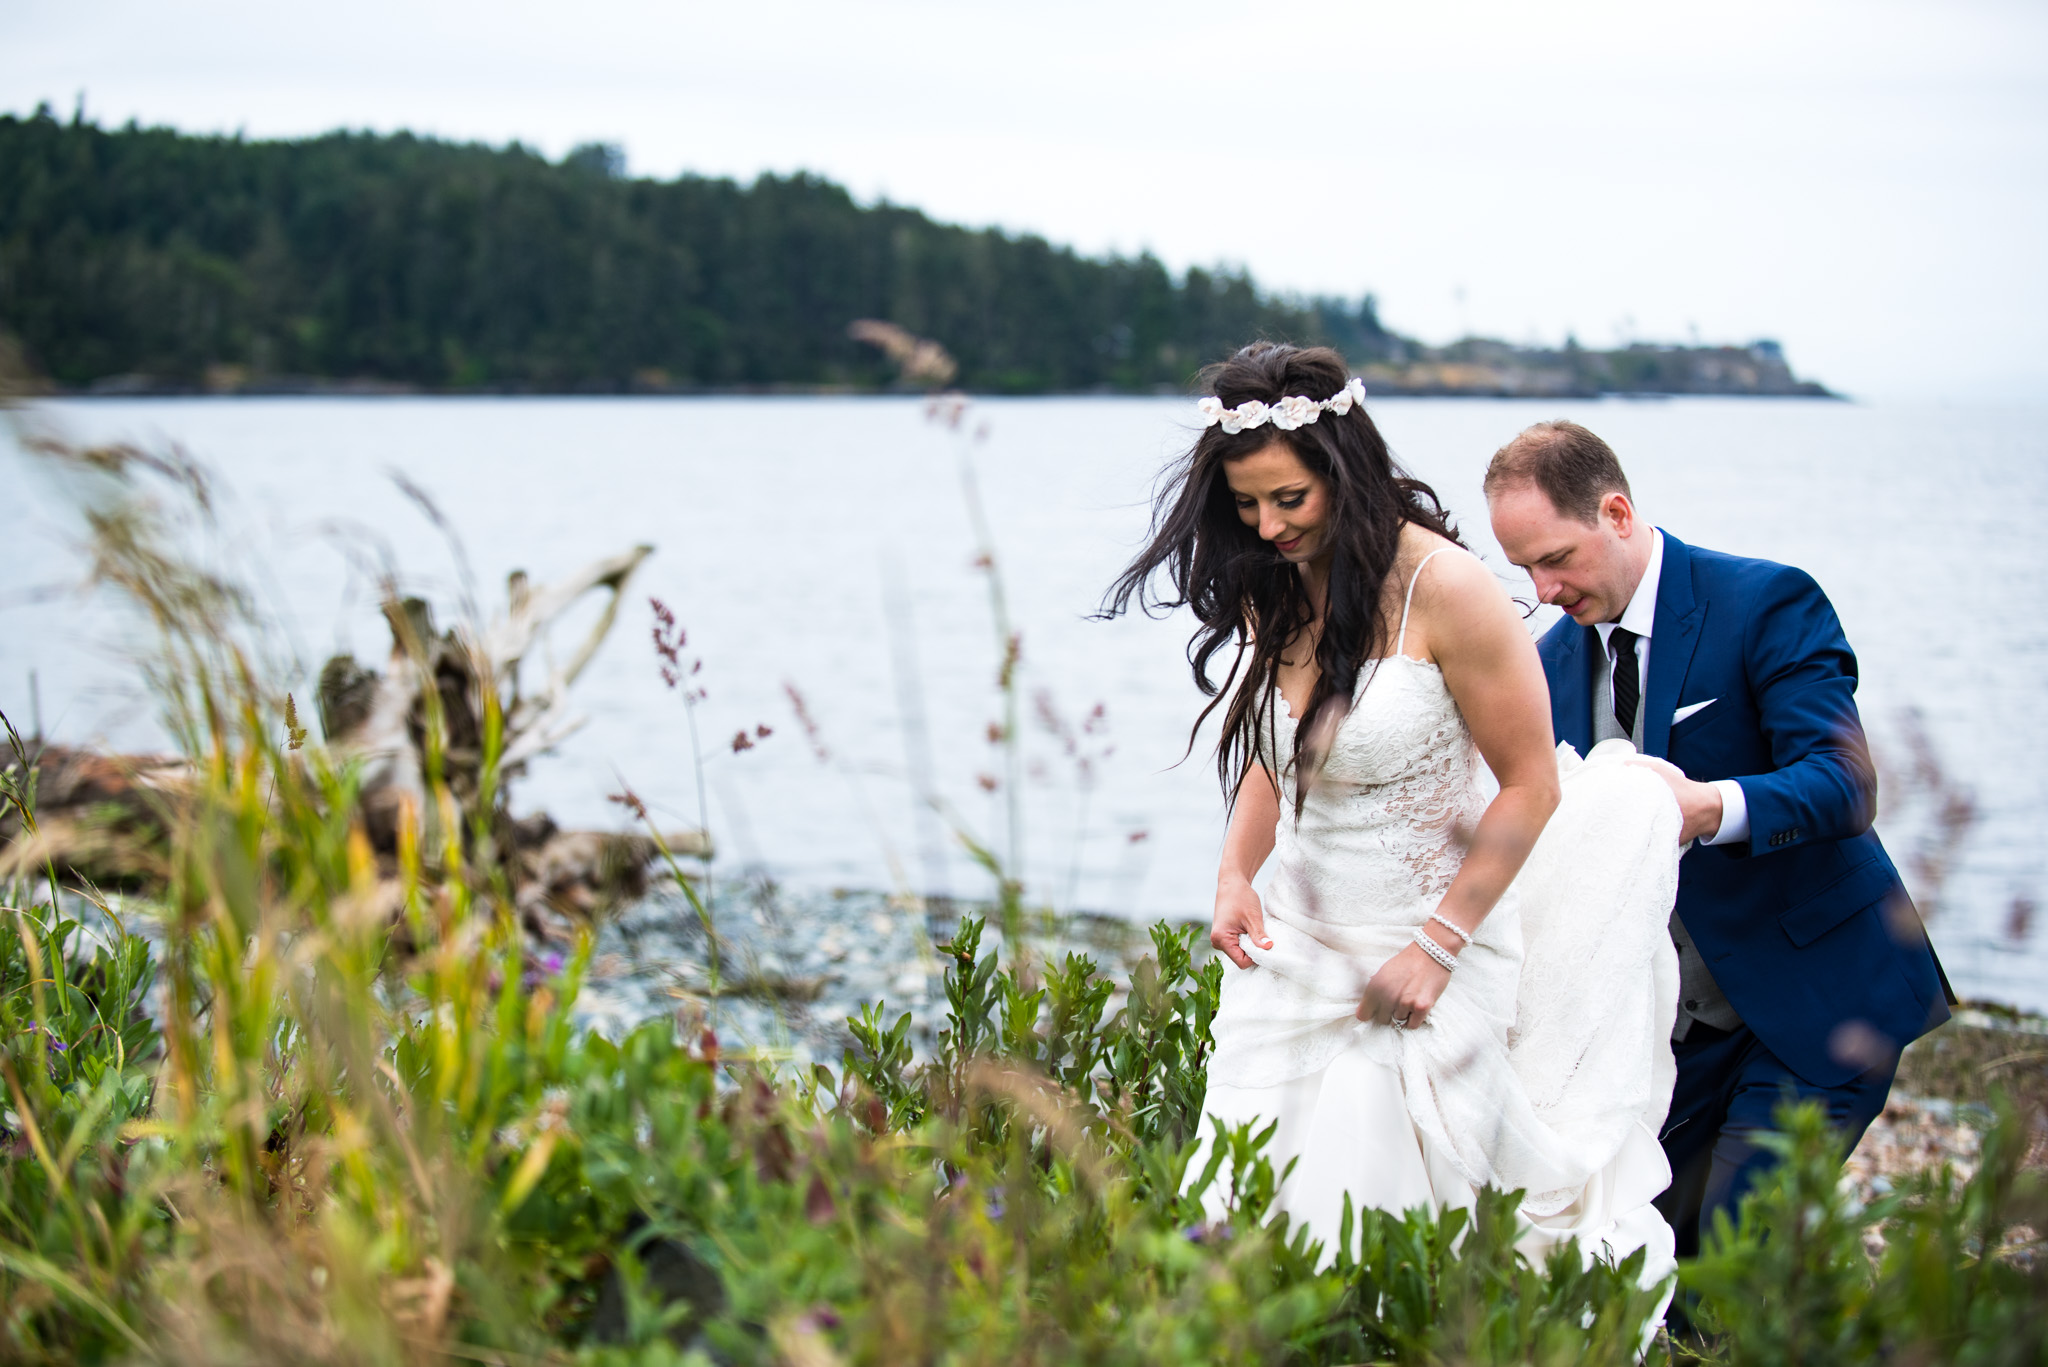 victoria-wedding-photographer-sooke-prestige-resort-wedding-31.jpg